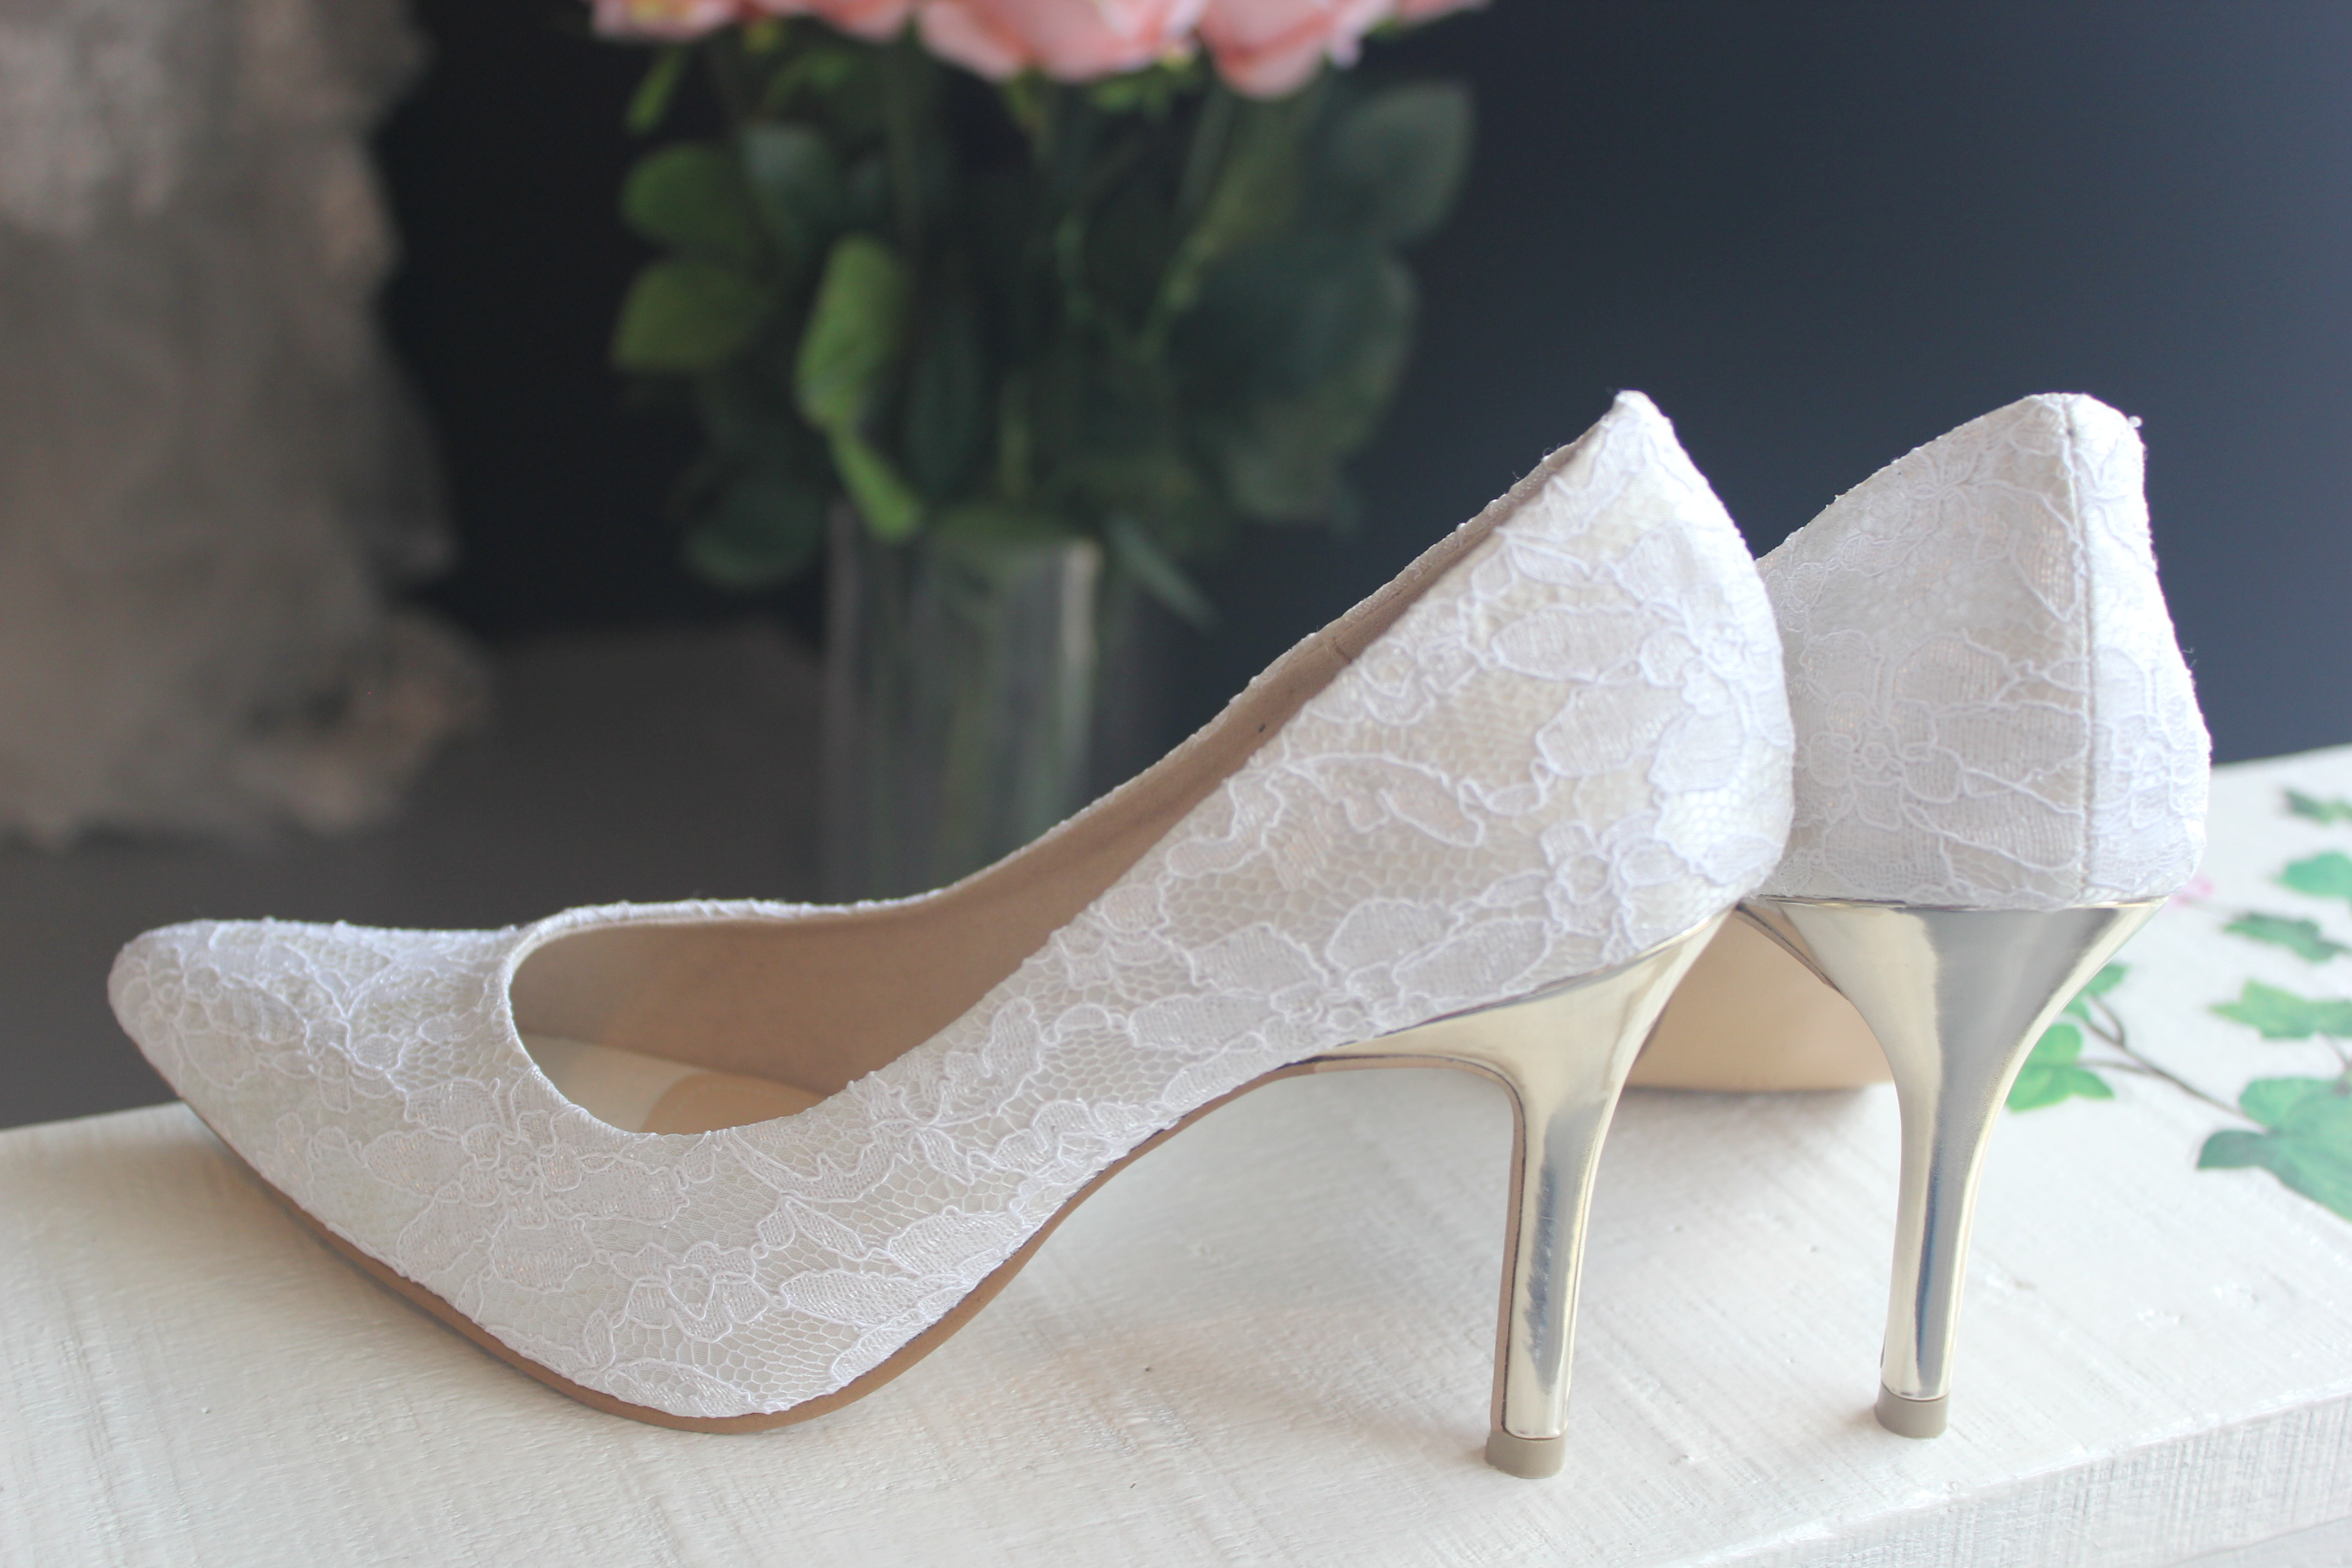 3 1/2 Inches Pointy Toe Lace Bridal Shoes with Gold Heels. Shoes